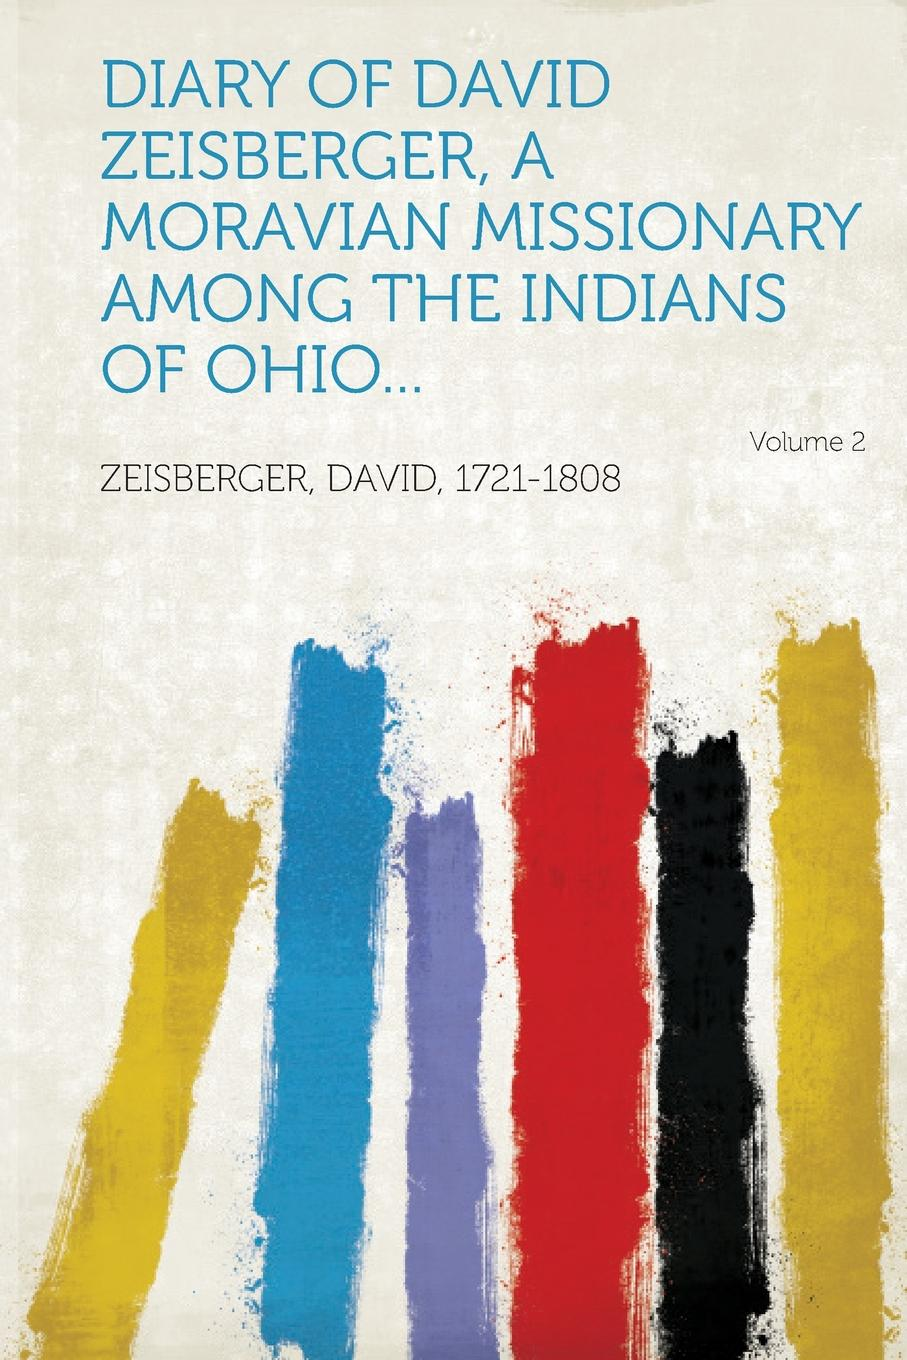 Diary of David Zeisberger, a Moravian Missionary Among the Indians of Ohio... Volume 2